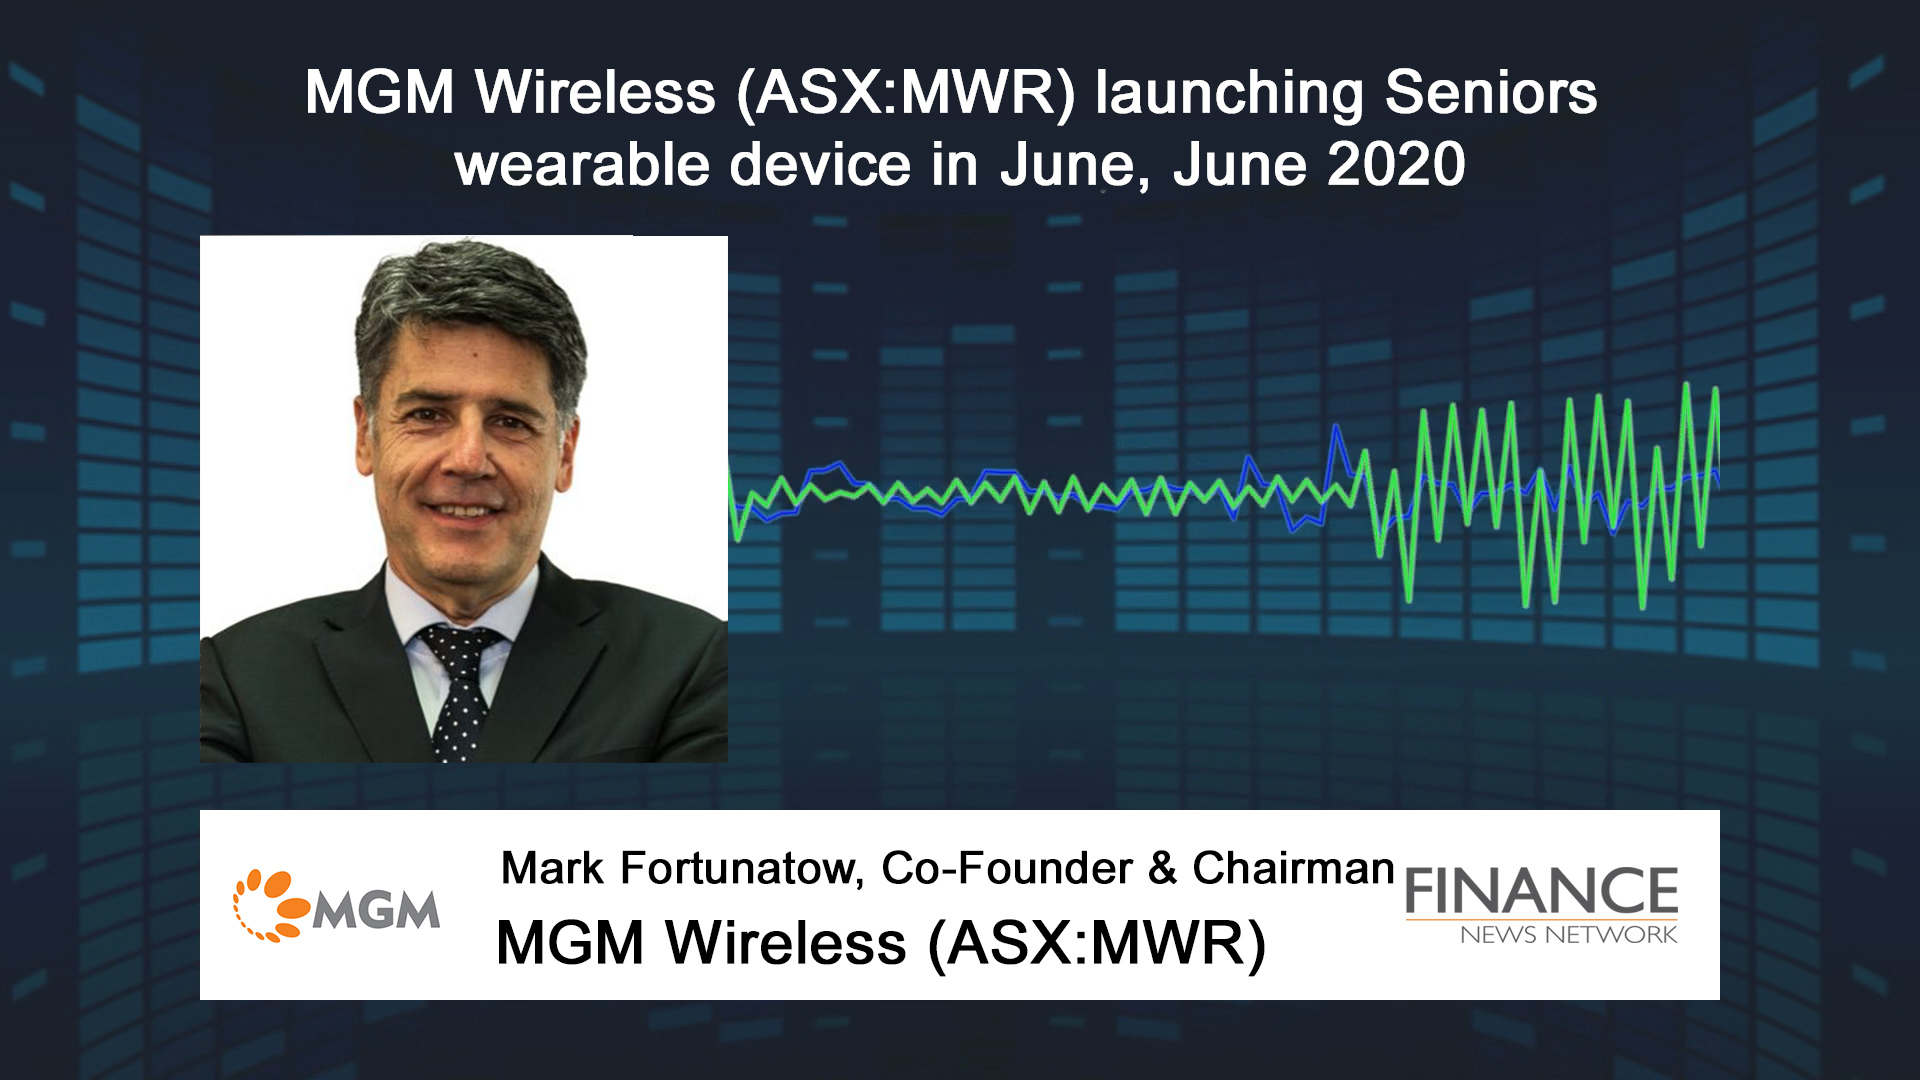 MGM Wireless (ASX:MWR) launching Seniors wearable device in June